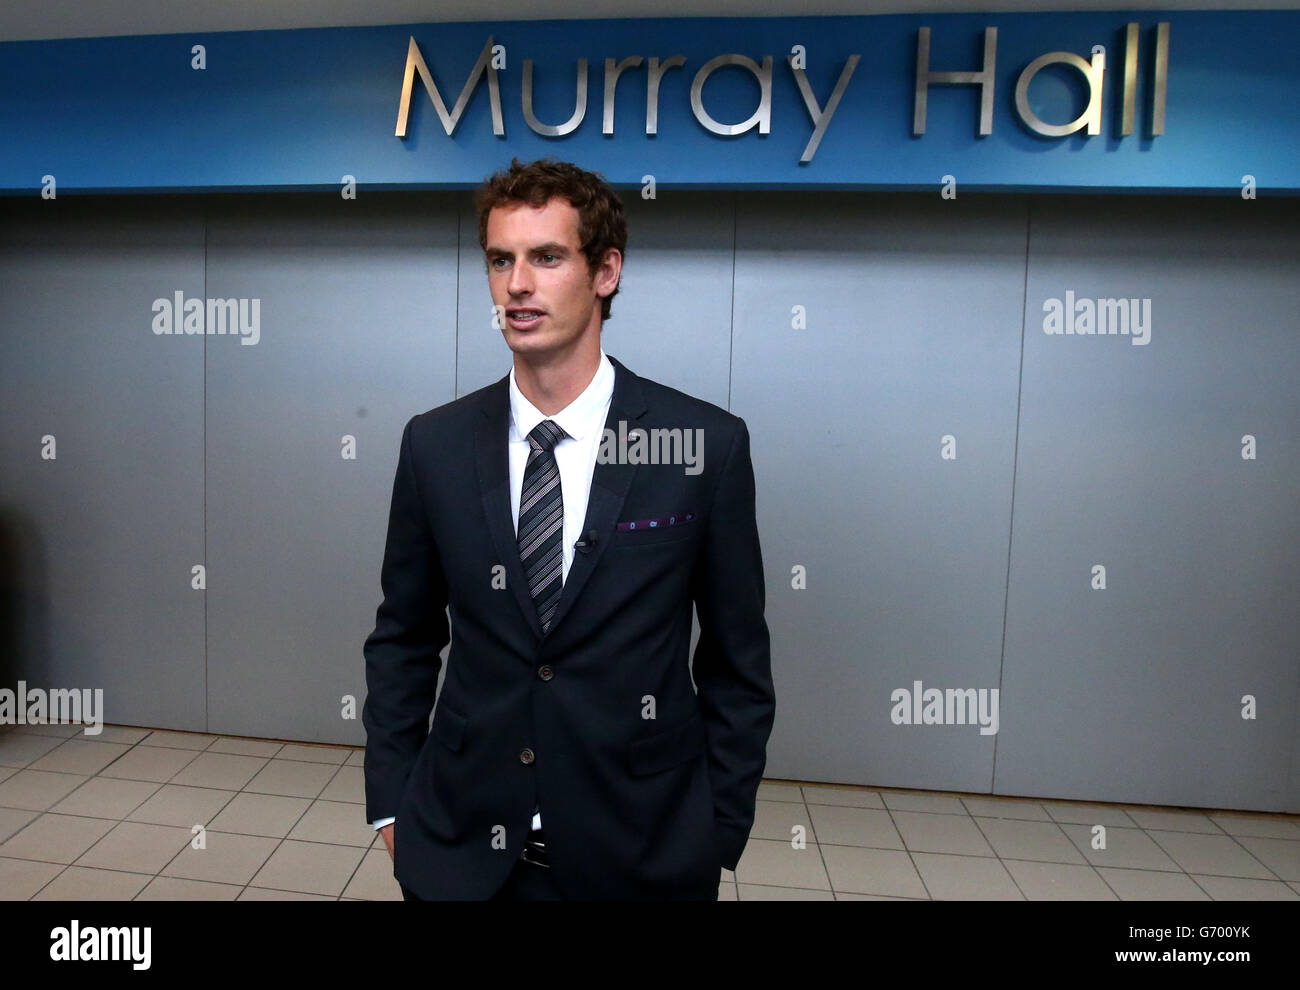 Andy Murray honouredStock Photo